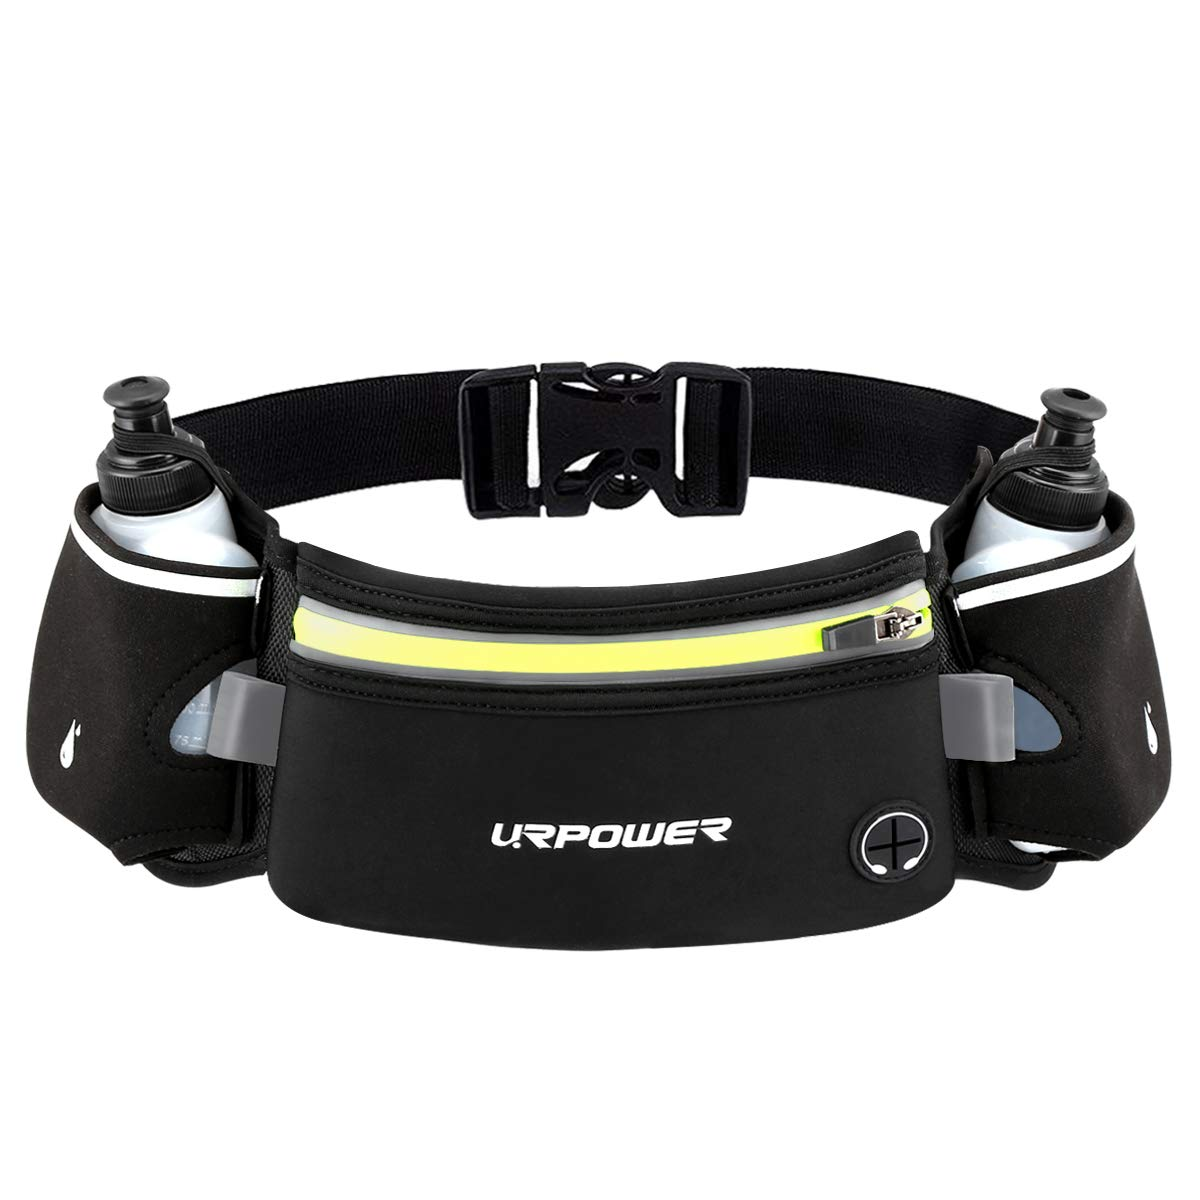 URPOWER Upgraded Running Belt with Water Bottle  Running Fanny Pack with Adjustable Straps  Large Pocket Waist Bag Phone Holder for Running Fits 6 5 inches Smartphones  Running Pouch for Men and Women